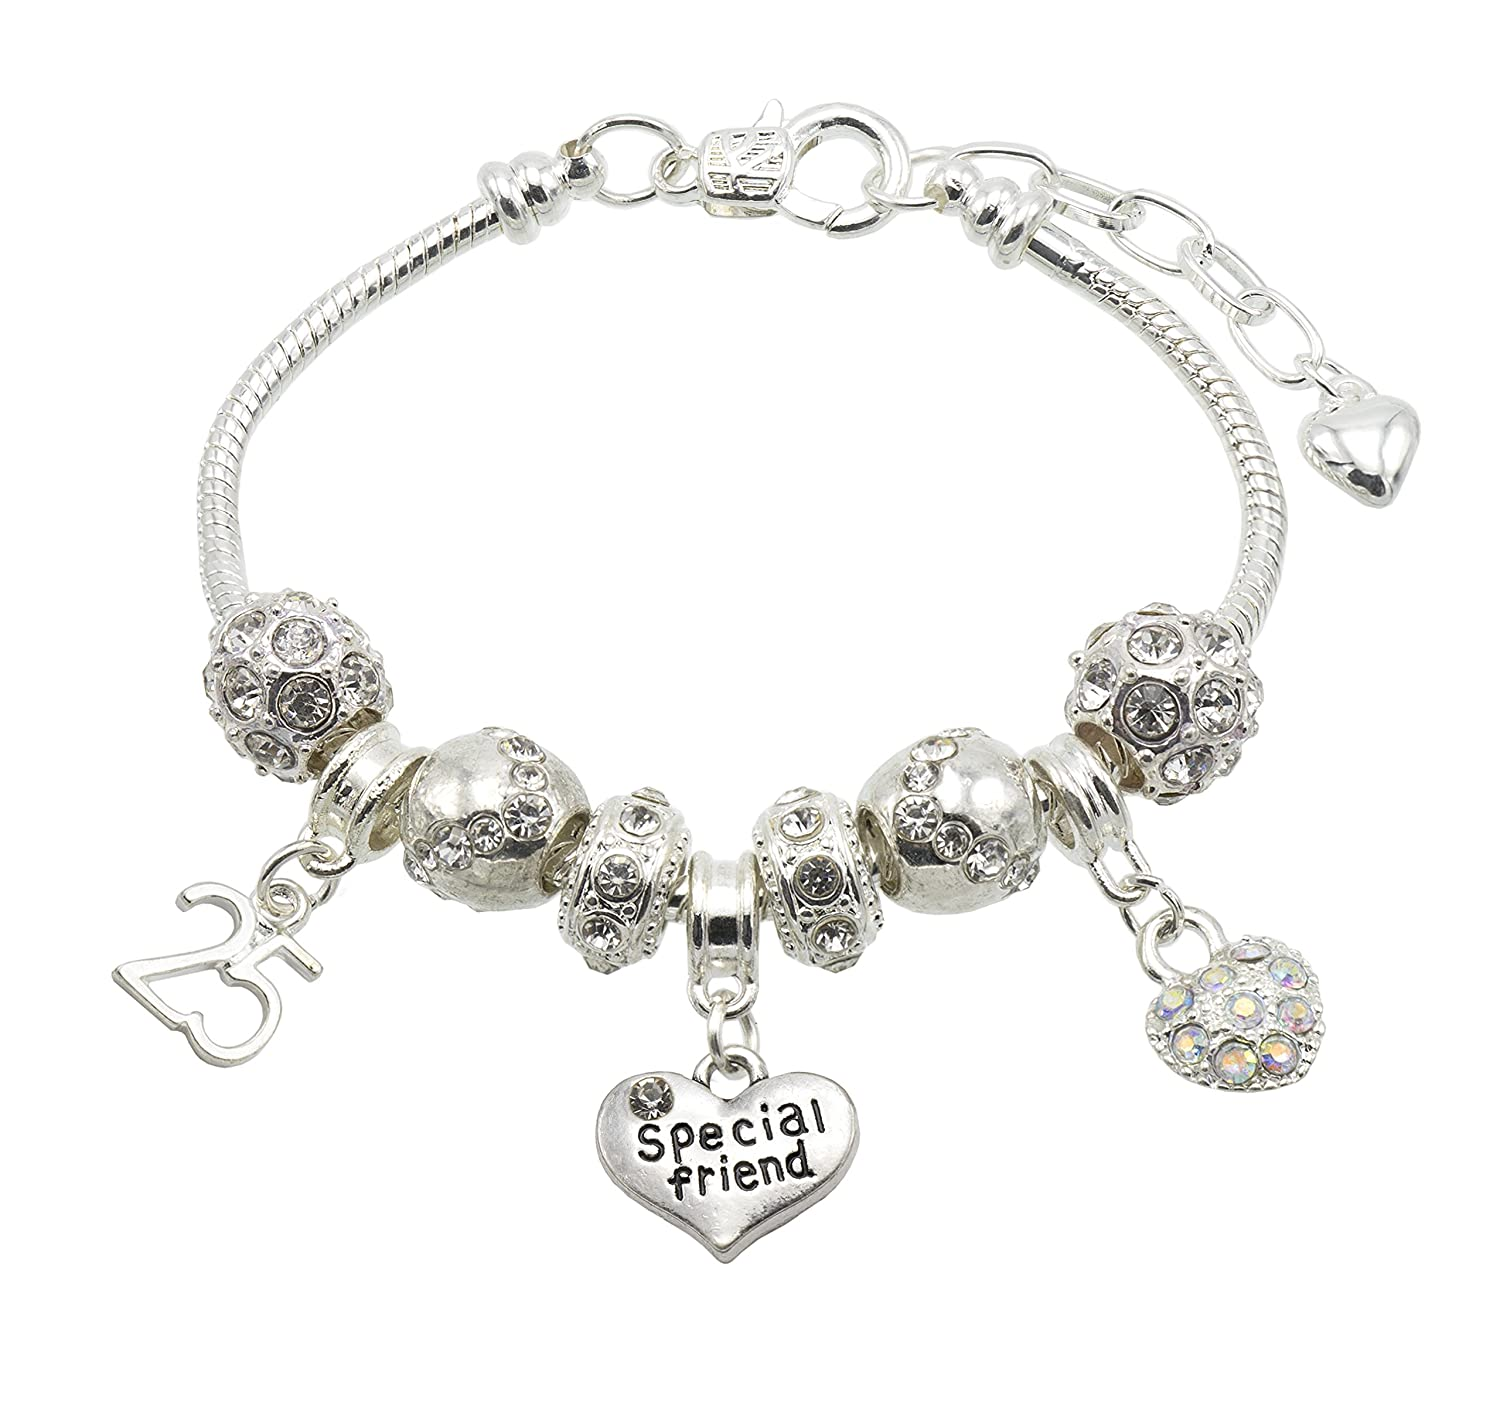 Special Friend Birthday Charm Bracelet with Gift Box - Ages Available 13, 15, 16, 18, 20, 21, 25, 30, 35, 40, 45 & 50 45 & 50 (13th) Jewellery Hut BR#cmk001specialFriend-13th